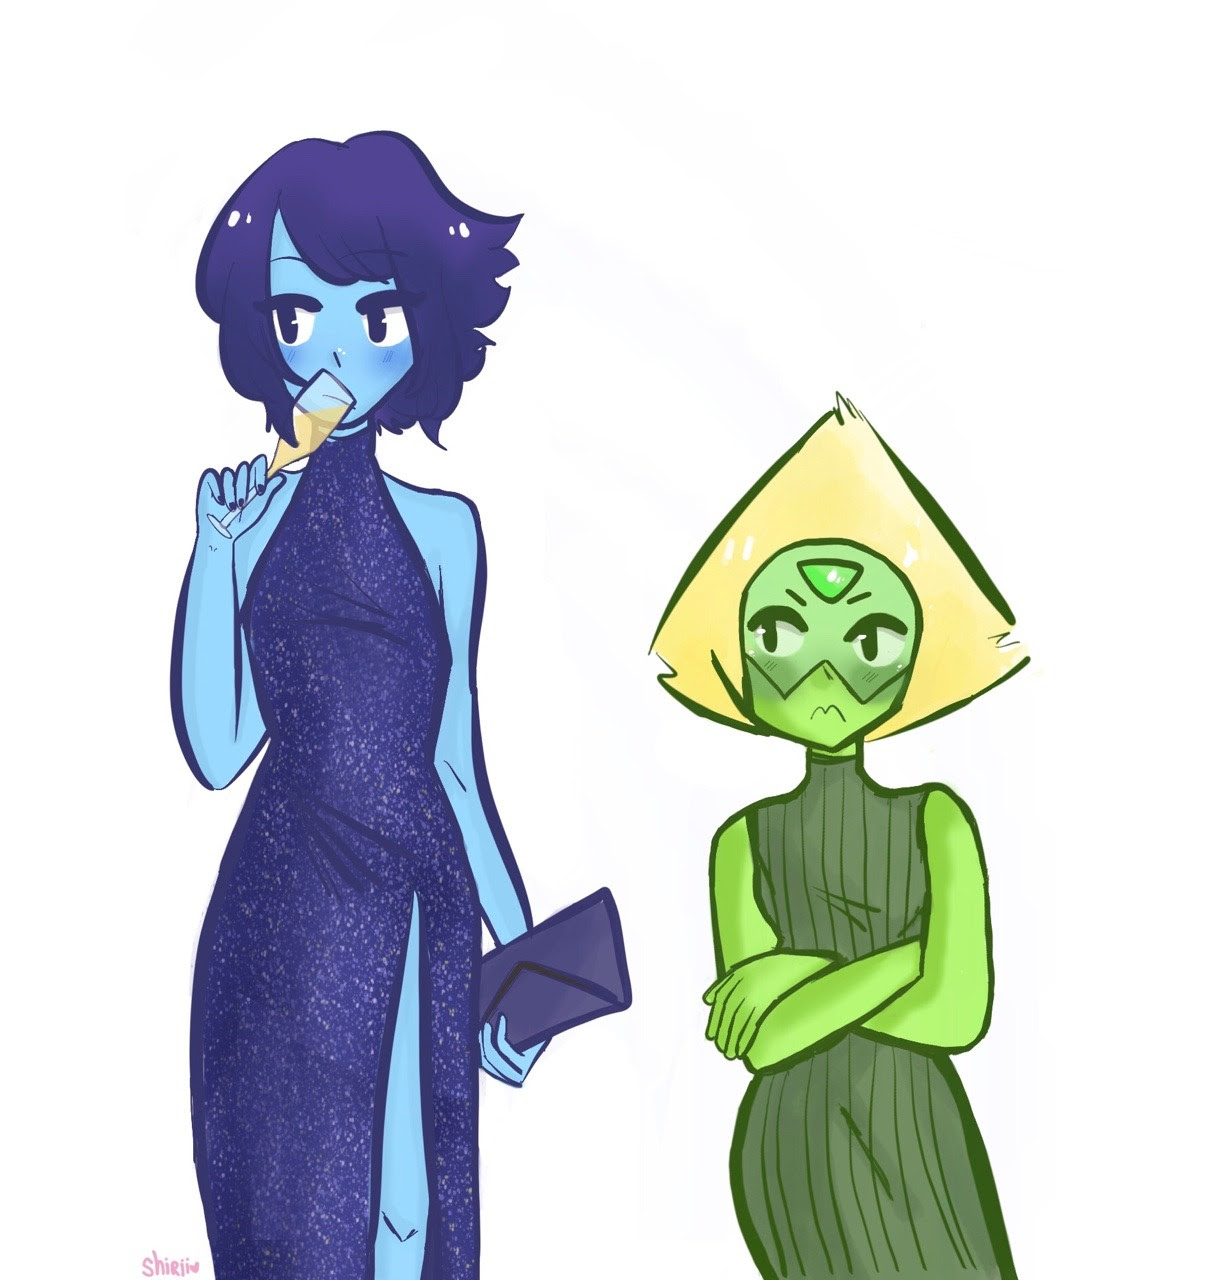 fancy gfs 💙💚